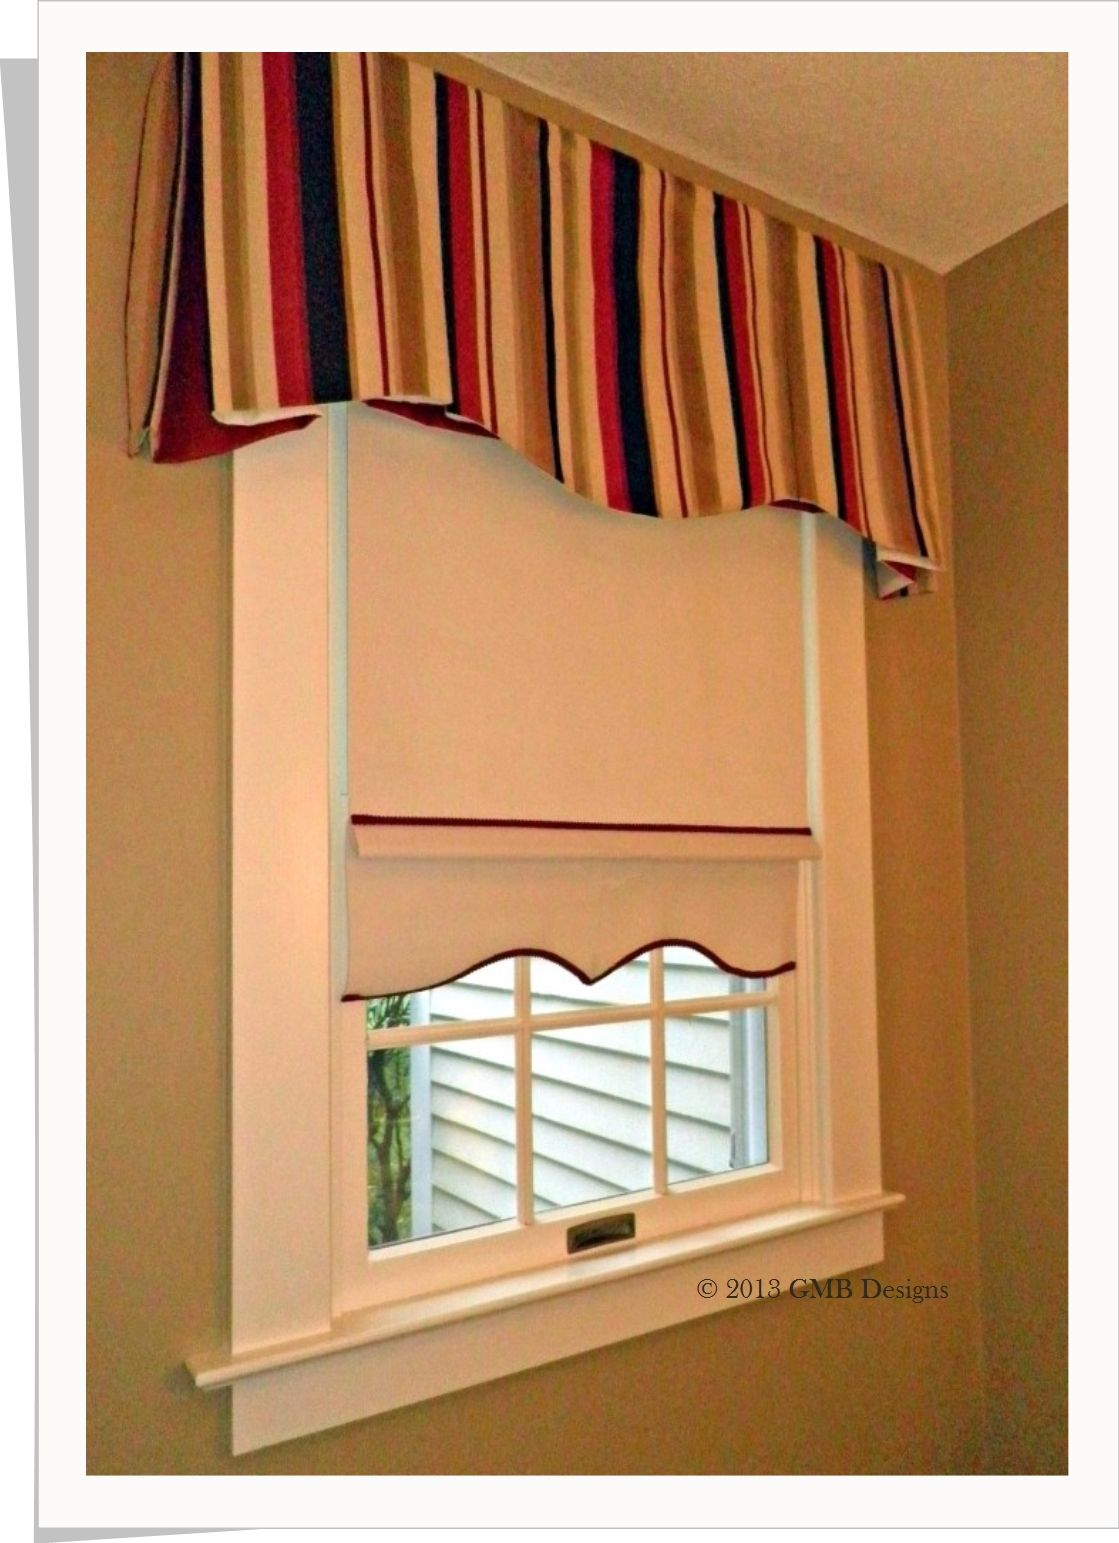 living room window valance ideas%0A Inverted boxpleat boardmount valance with rollup shade